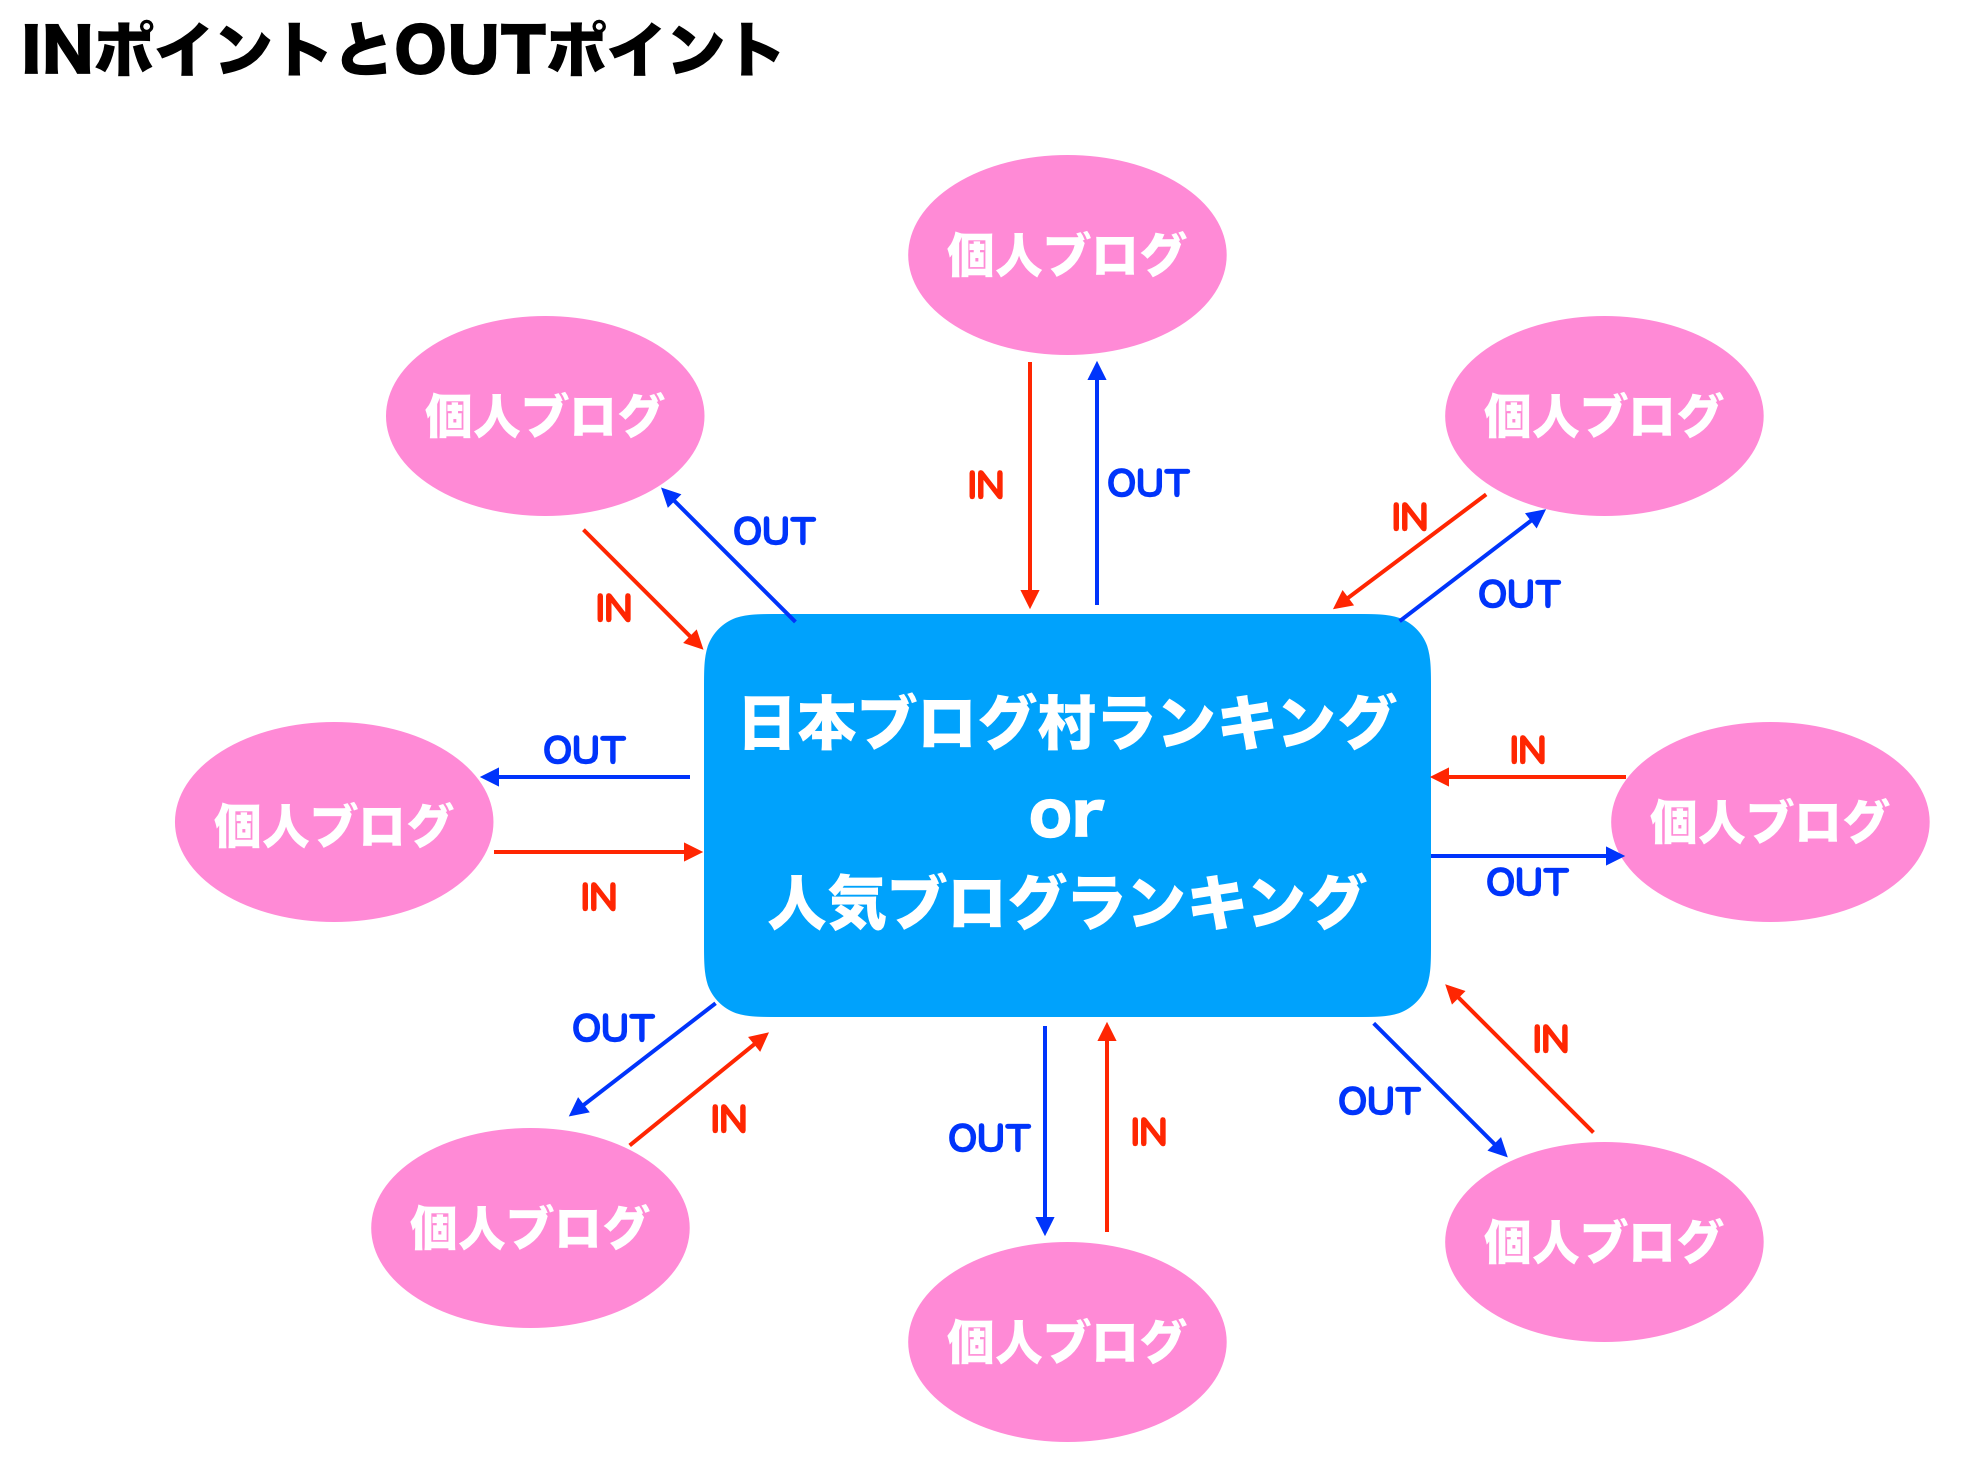 INポイントとOUTポイント